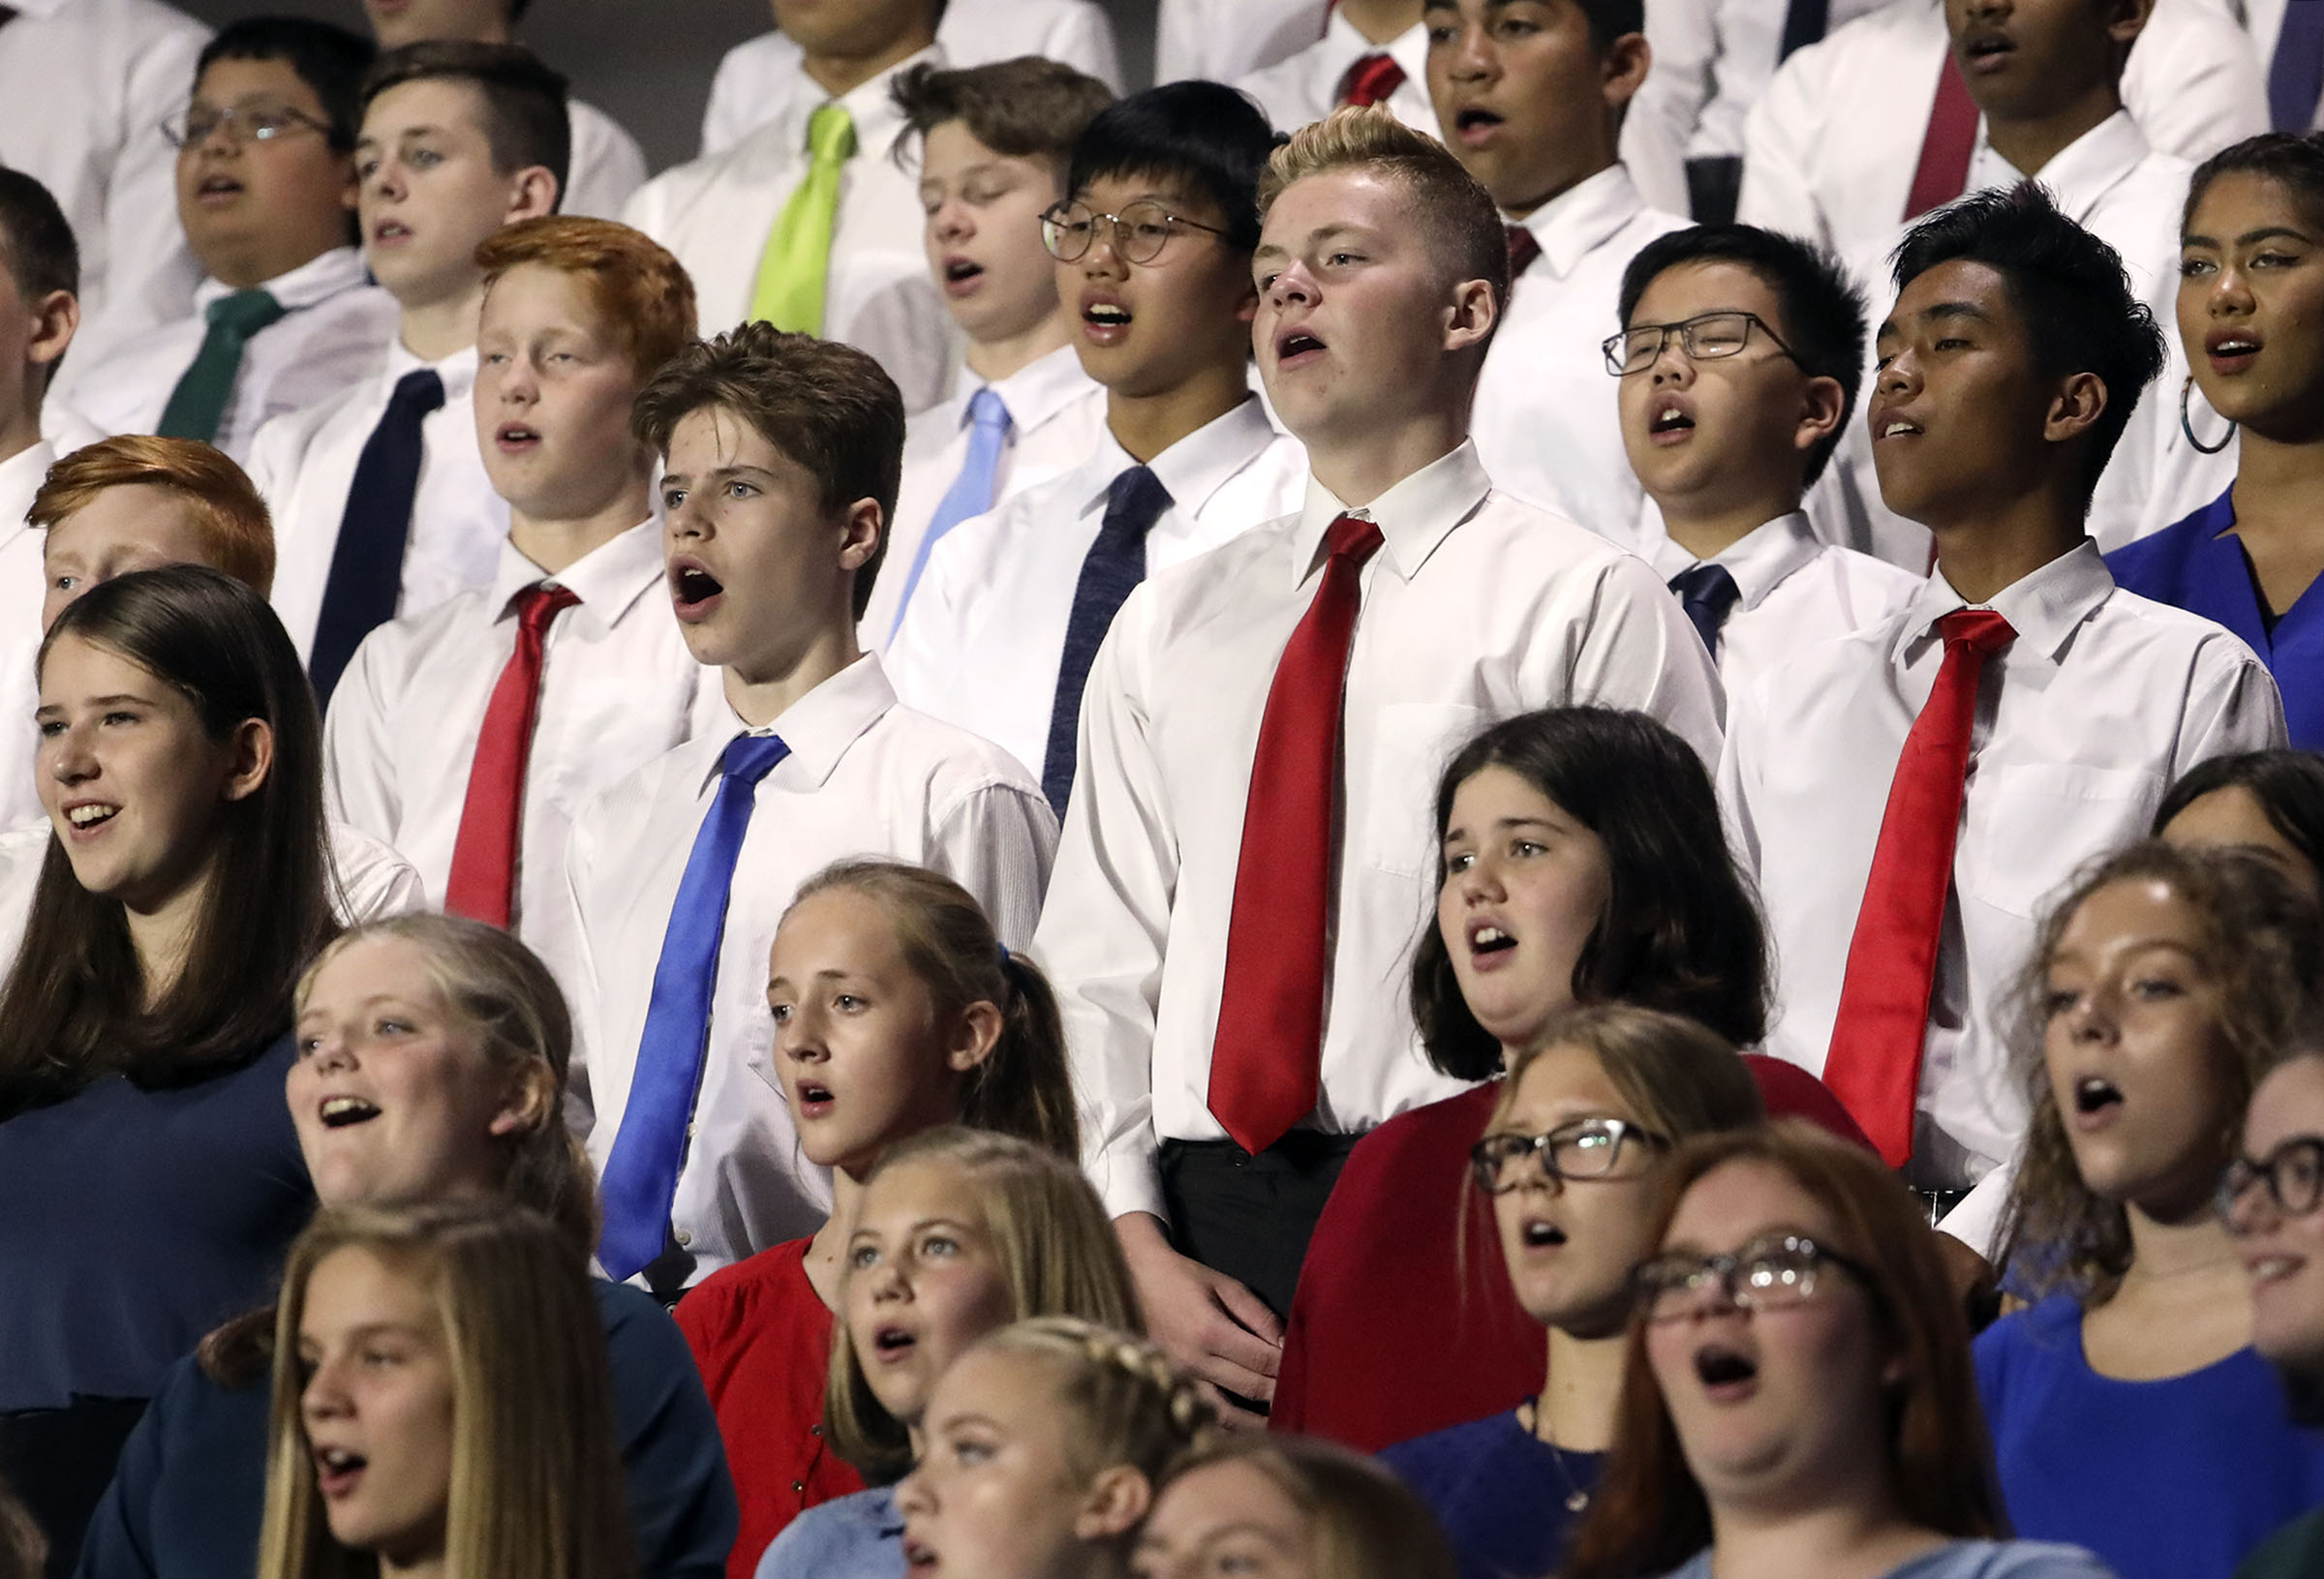 Members of the Vancouver Tri-State Youth Choir sing before President Russell M. Nelson of The Church of Jesus Christ of Latter-day Saints speaks at the Langley Events Center in Langley, British Columbia, on Sunday, Sept. 16, 2018.Church leaders announced the 2020 youth theme in a notice sent to general and local leaders on Aug. 1, 2019.